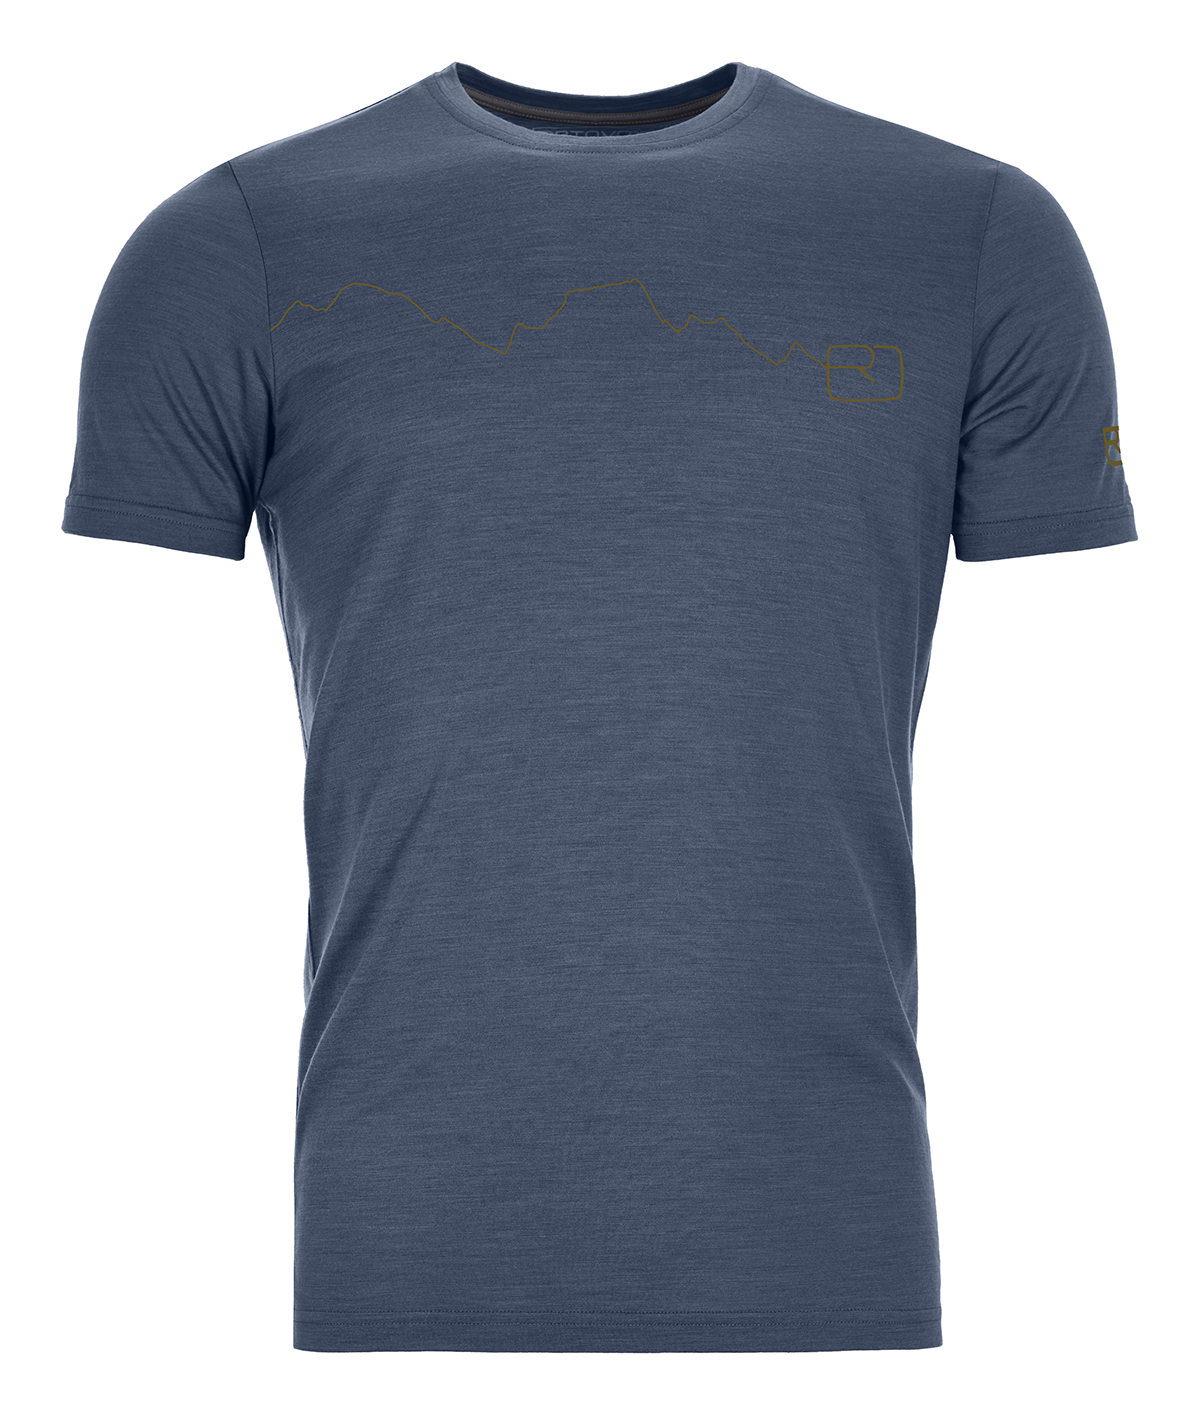 ORTOVOX 120 Tec Mountain T-Shirt